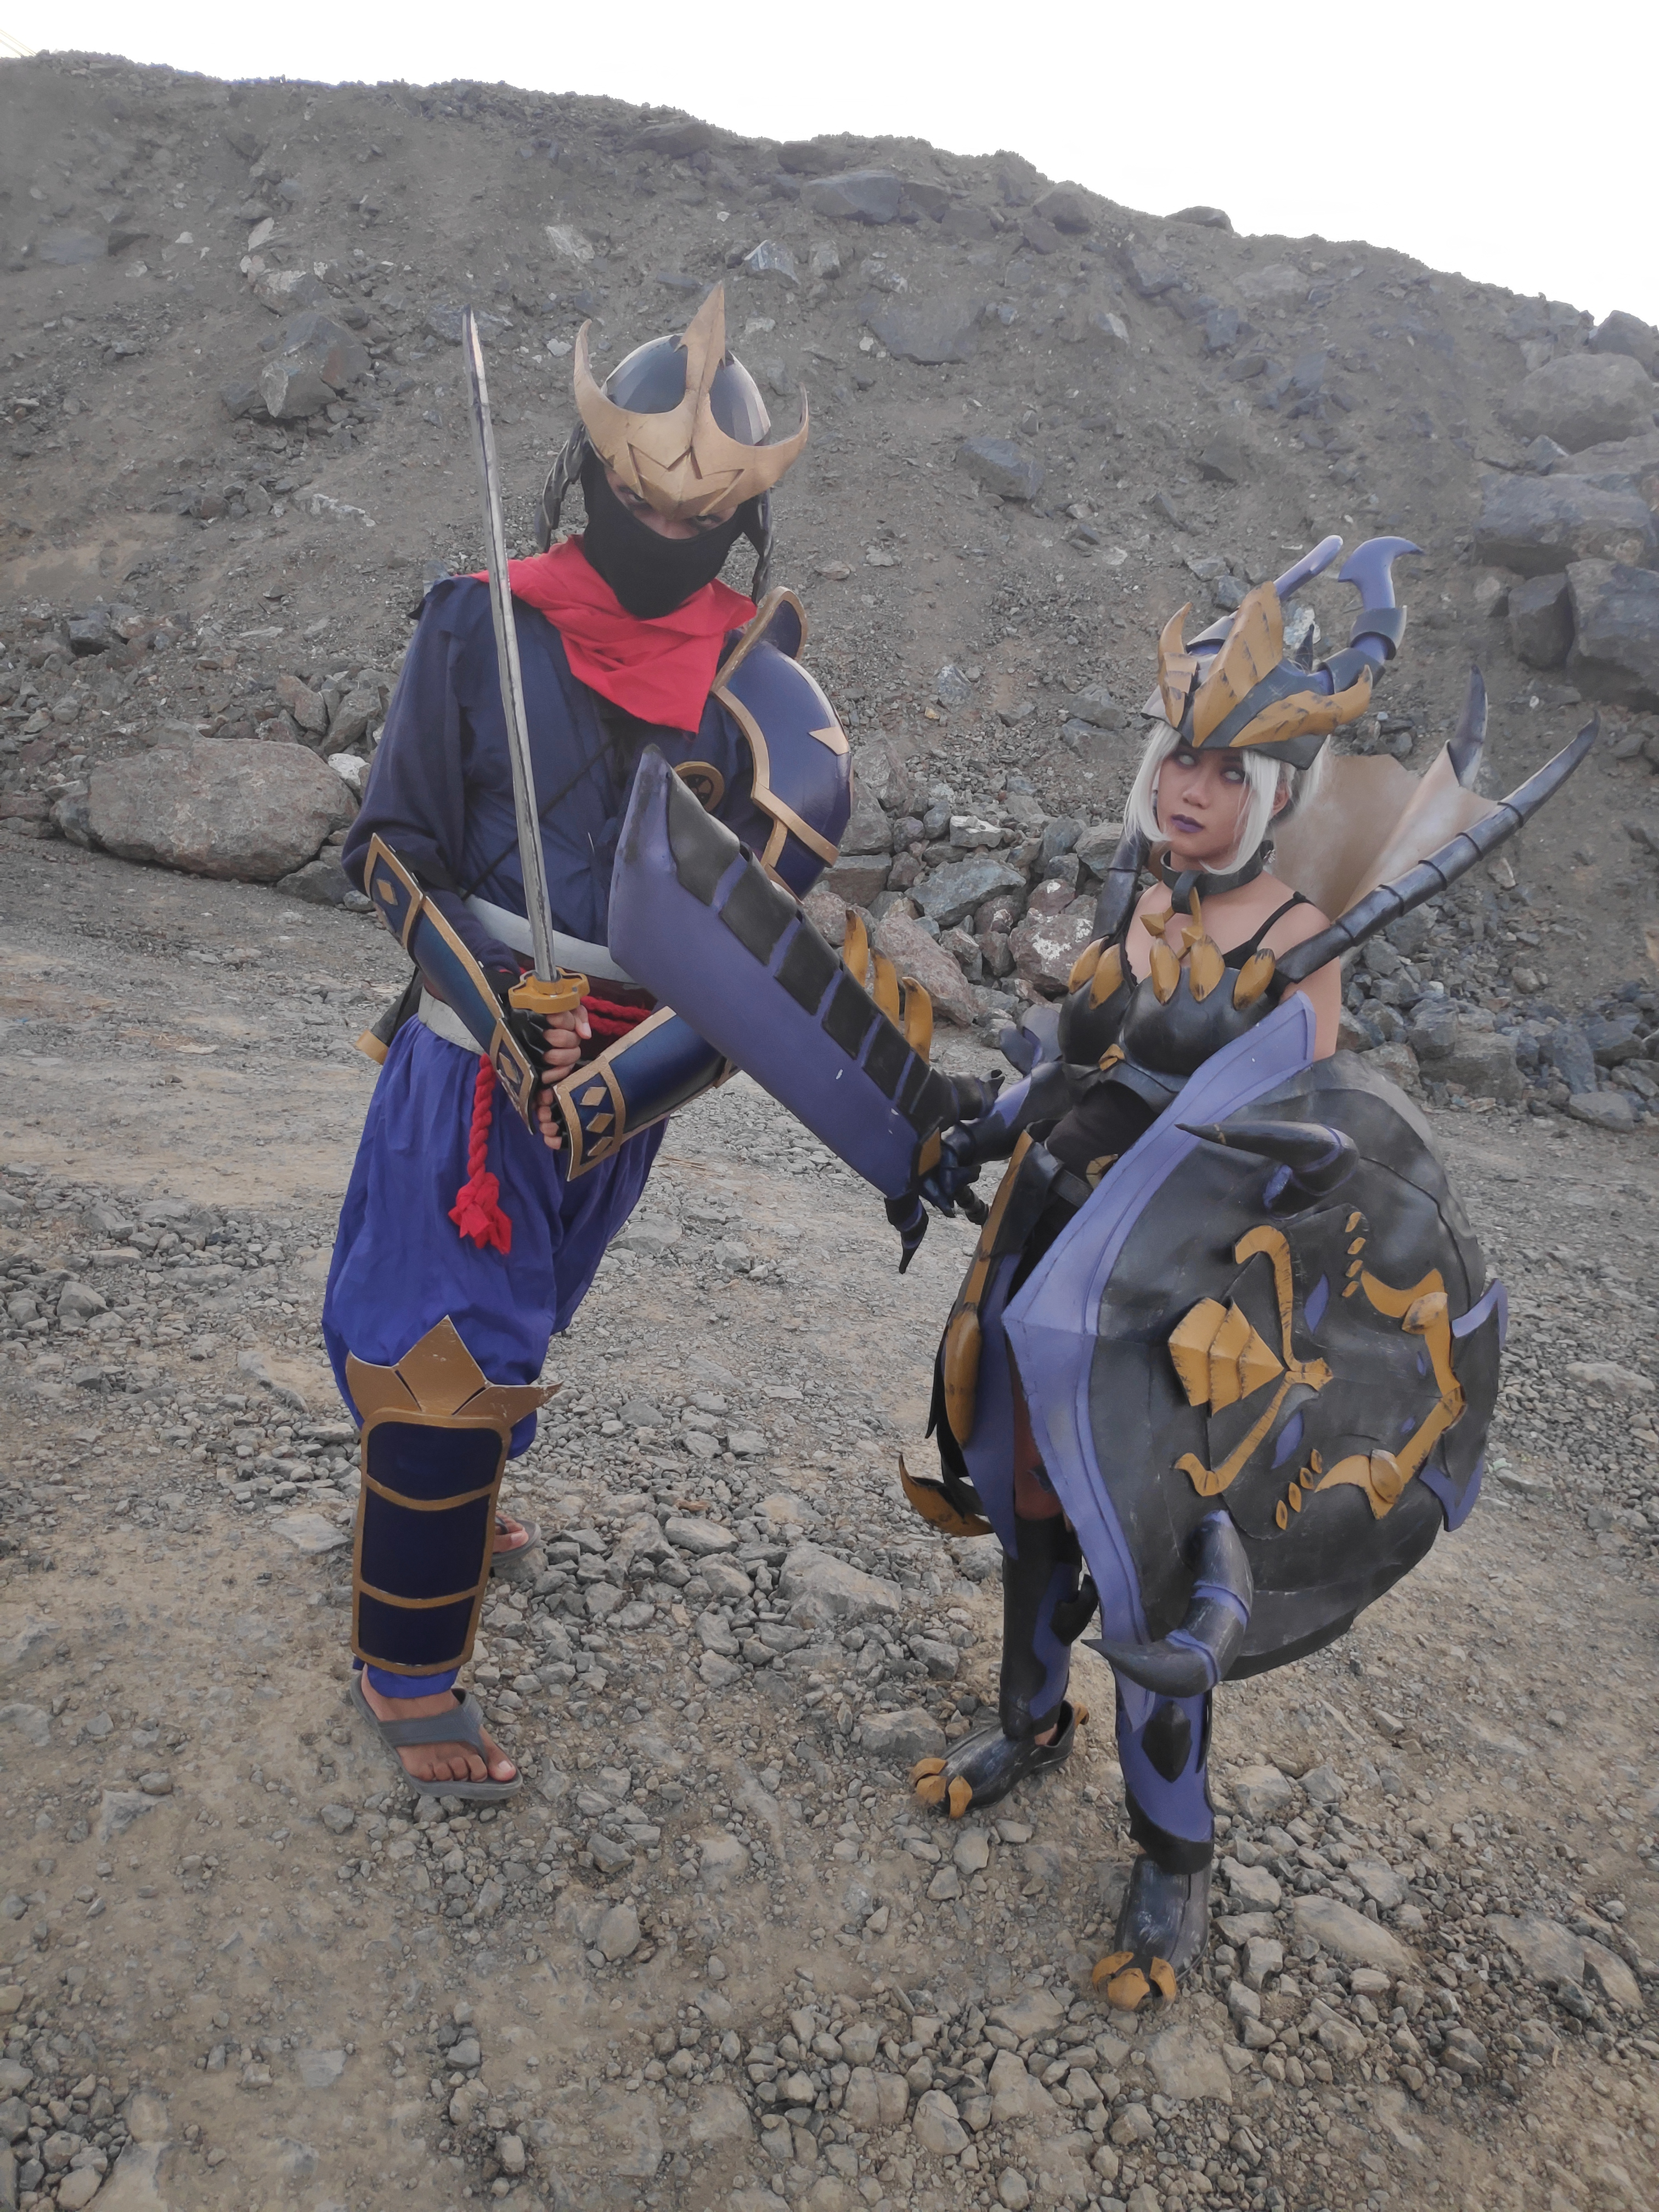 Two armored cosplayers facing the camera